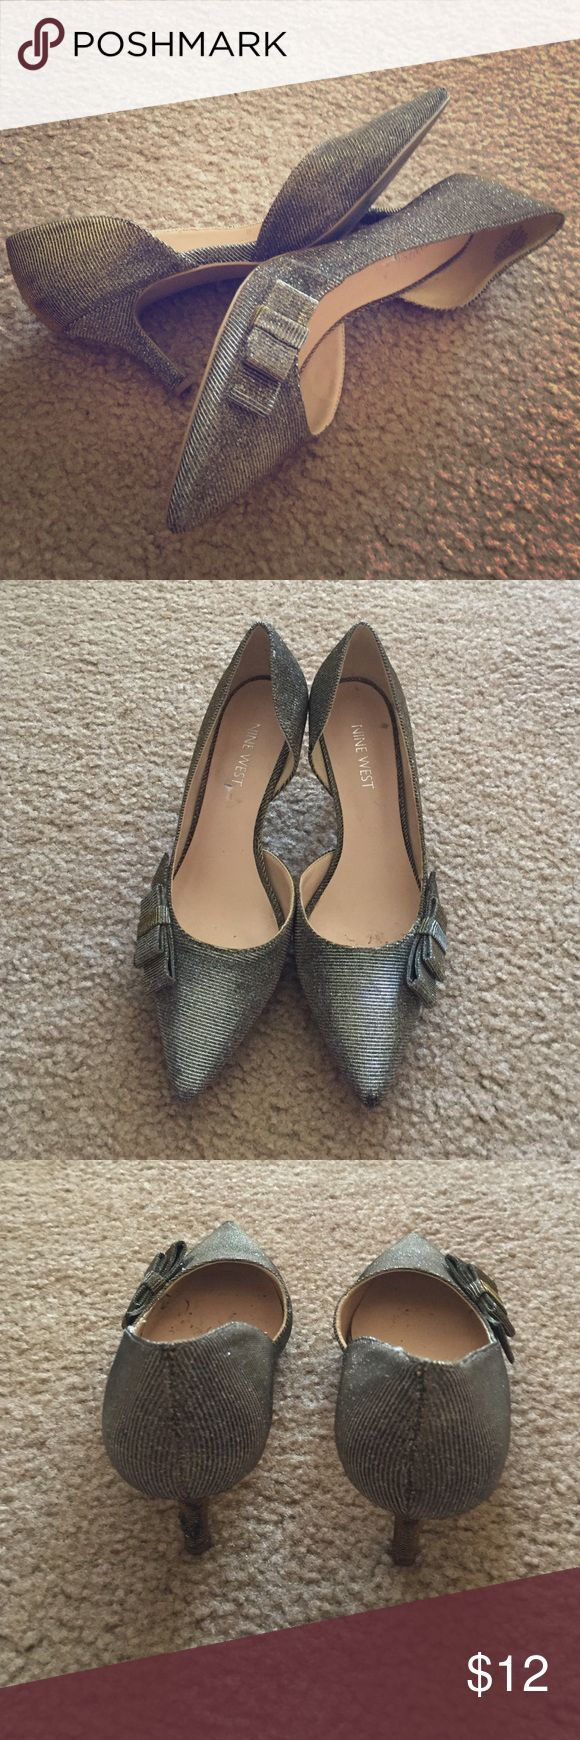 Nine west heels Cute and smart. will be cleaned up before shipping. Nine West Shoes Heels